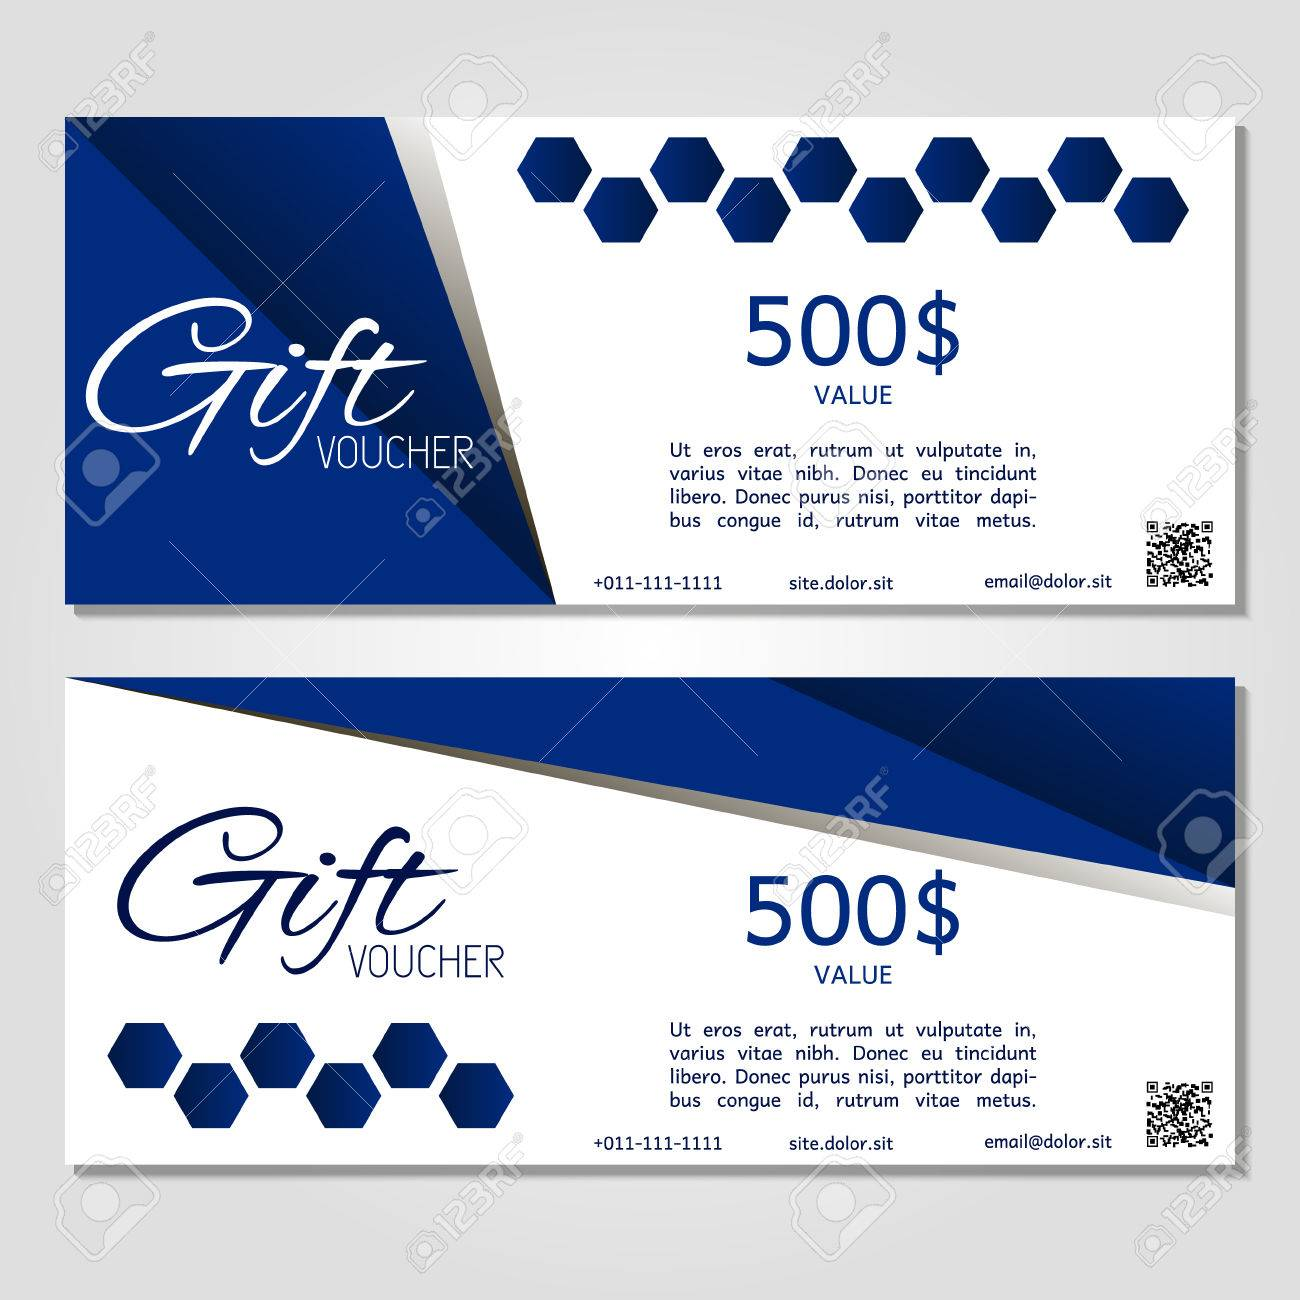 gift voucher vector illustration coupon template for company